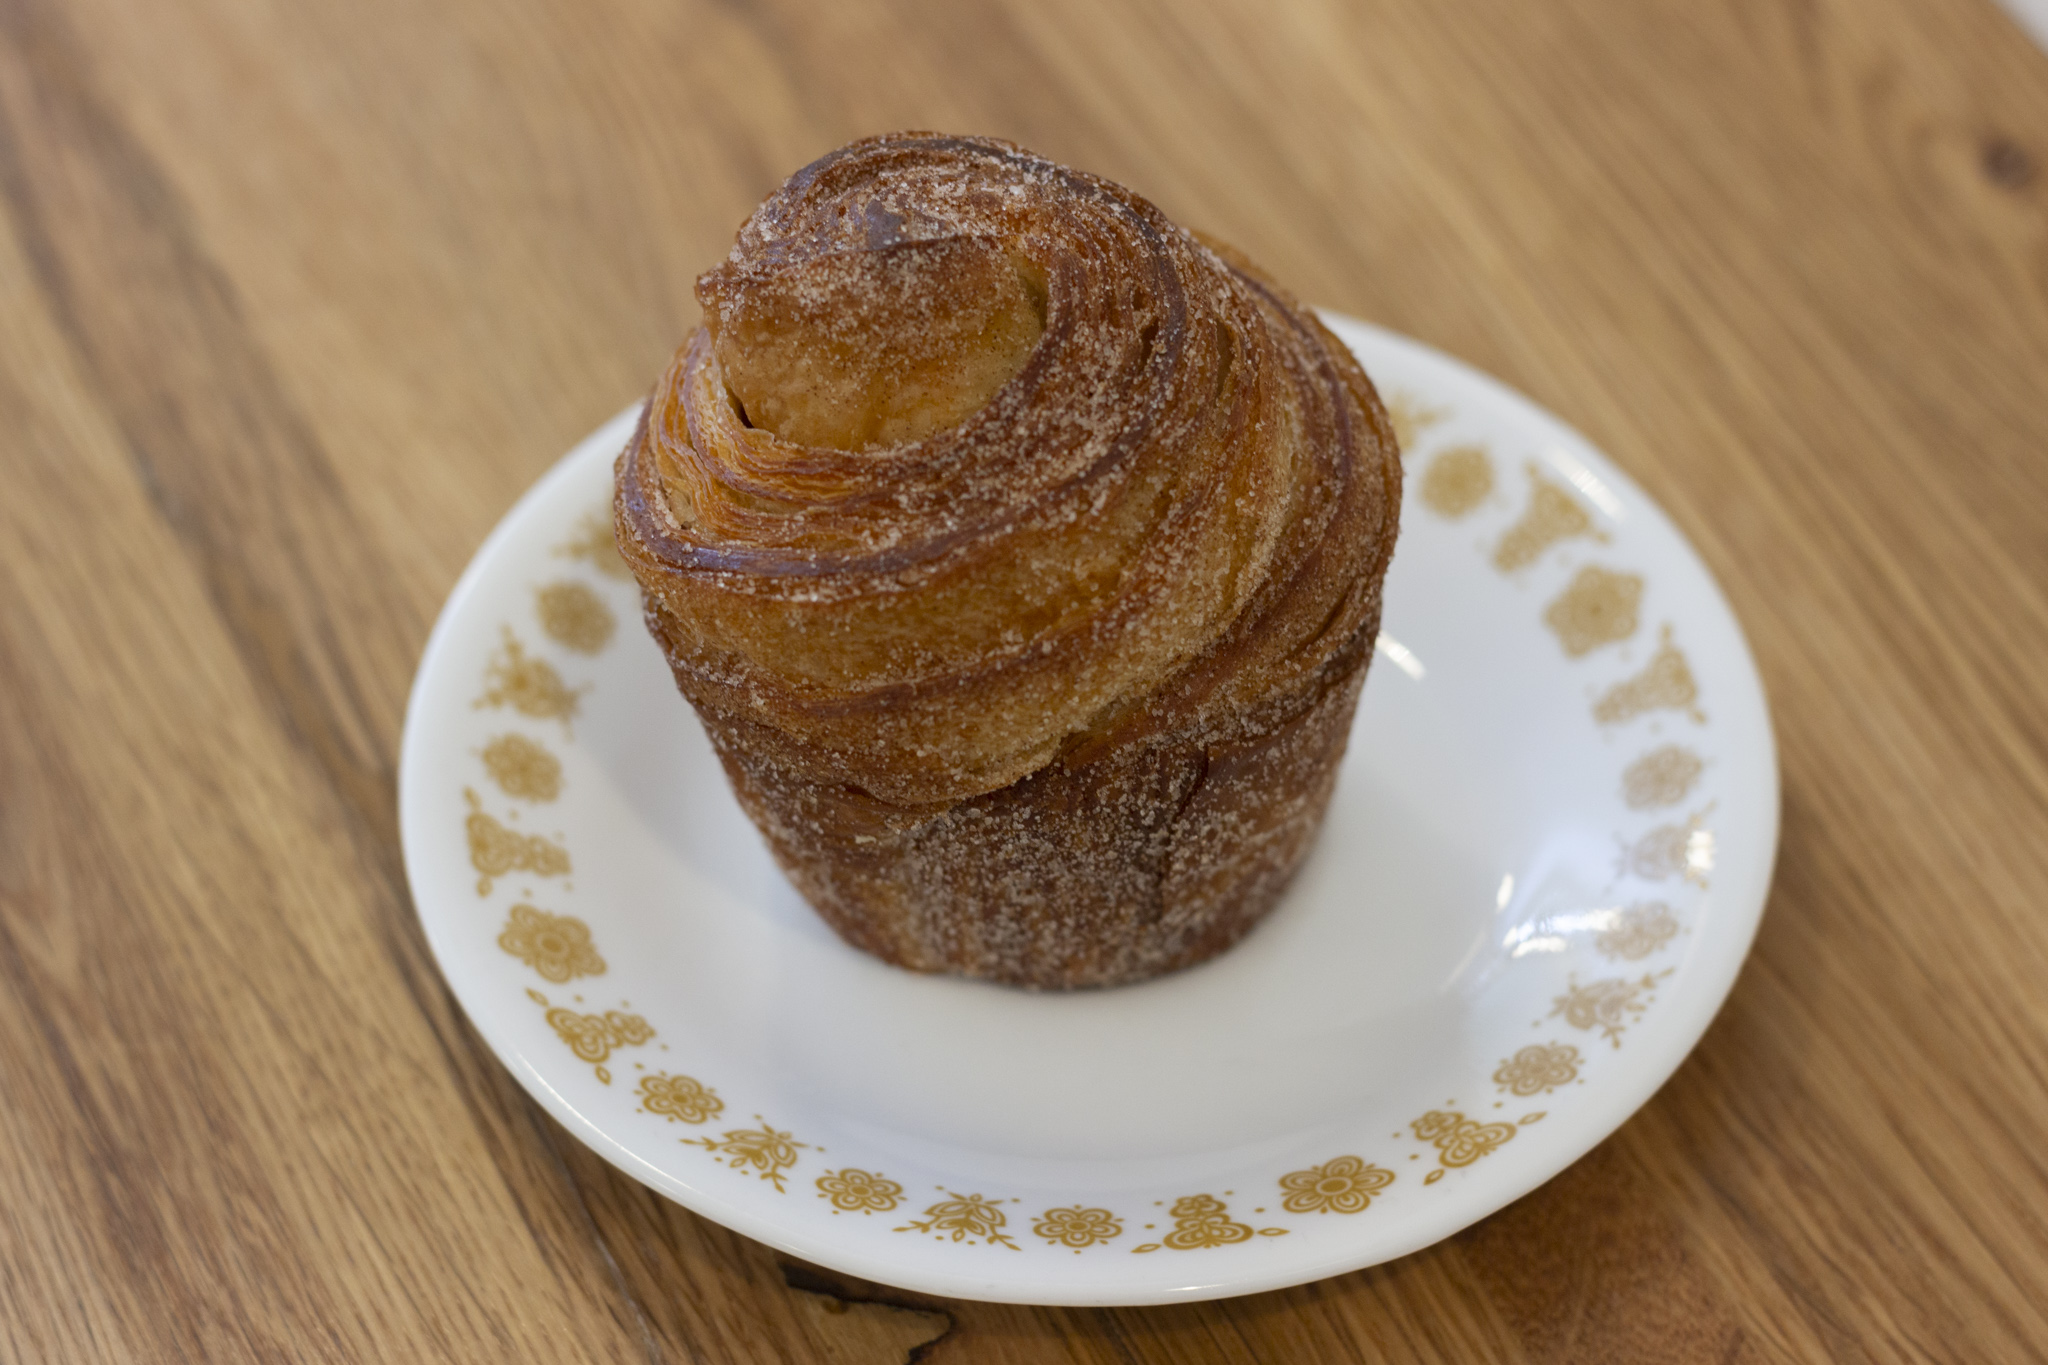 Cinnamon Cruffin from Mana Bakery